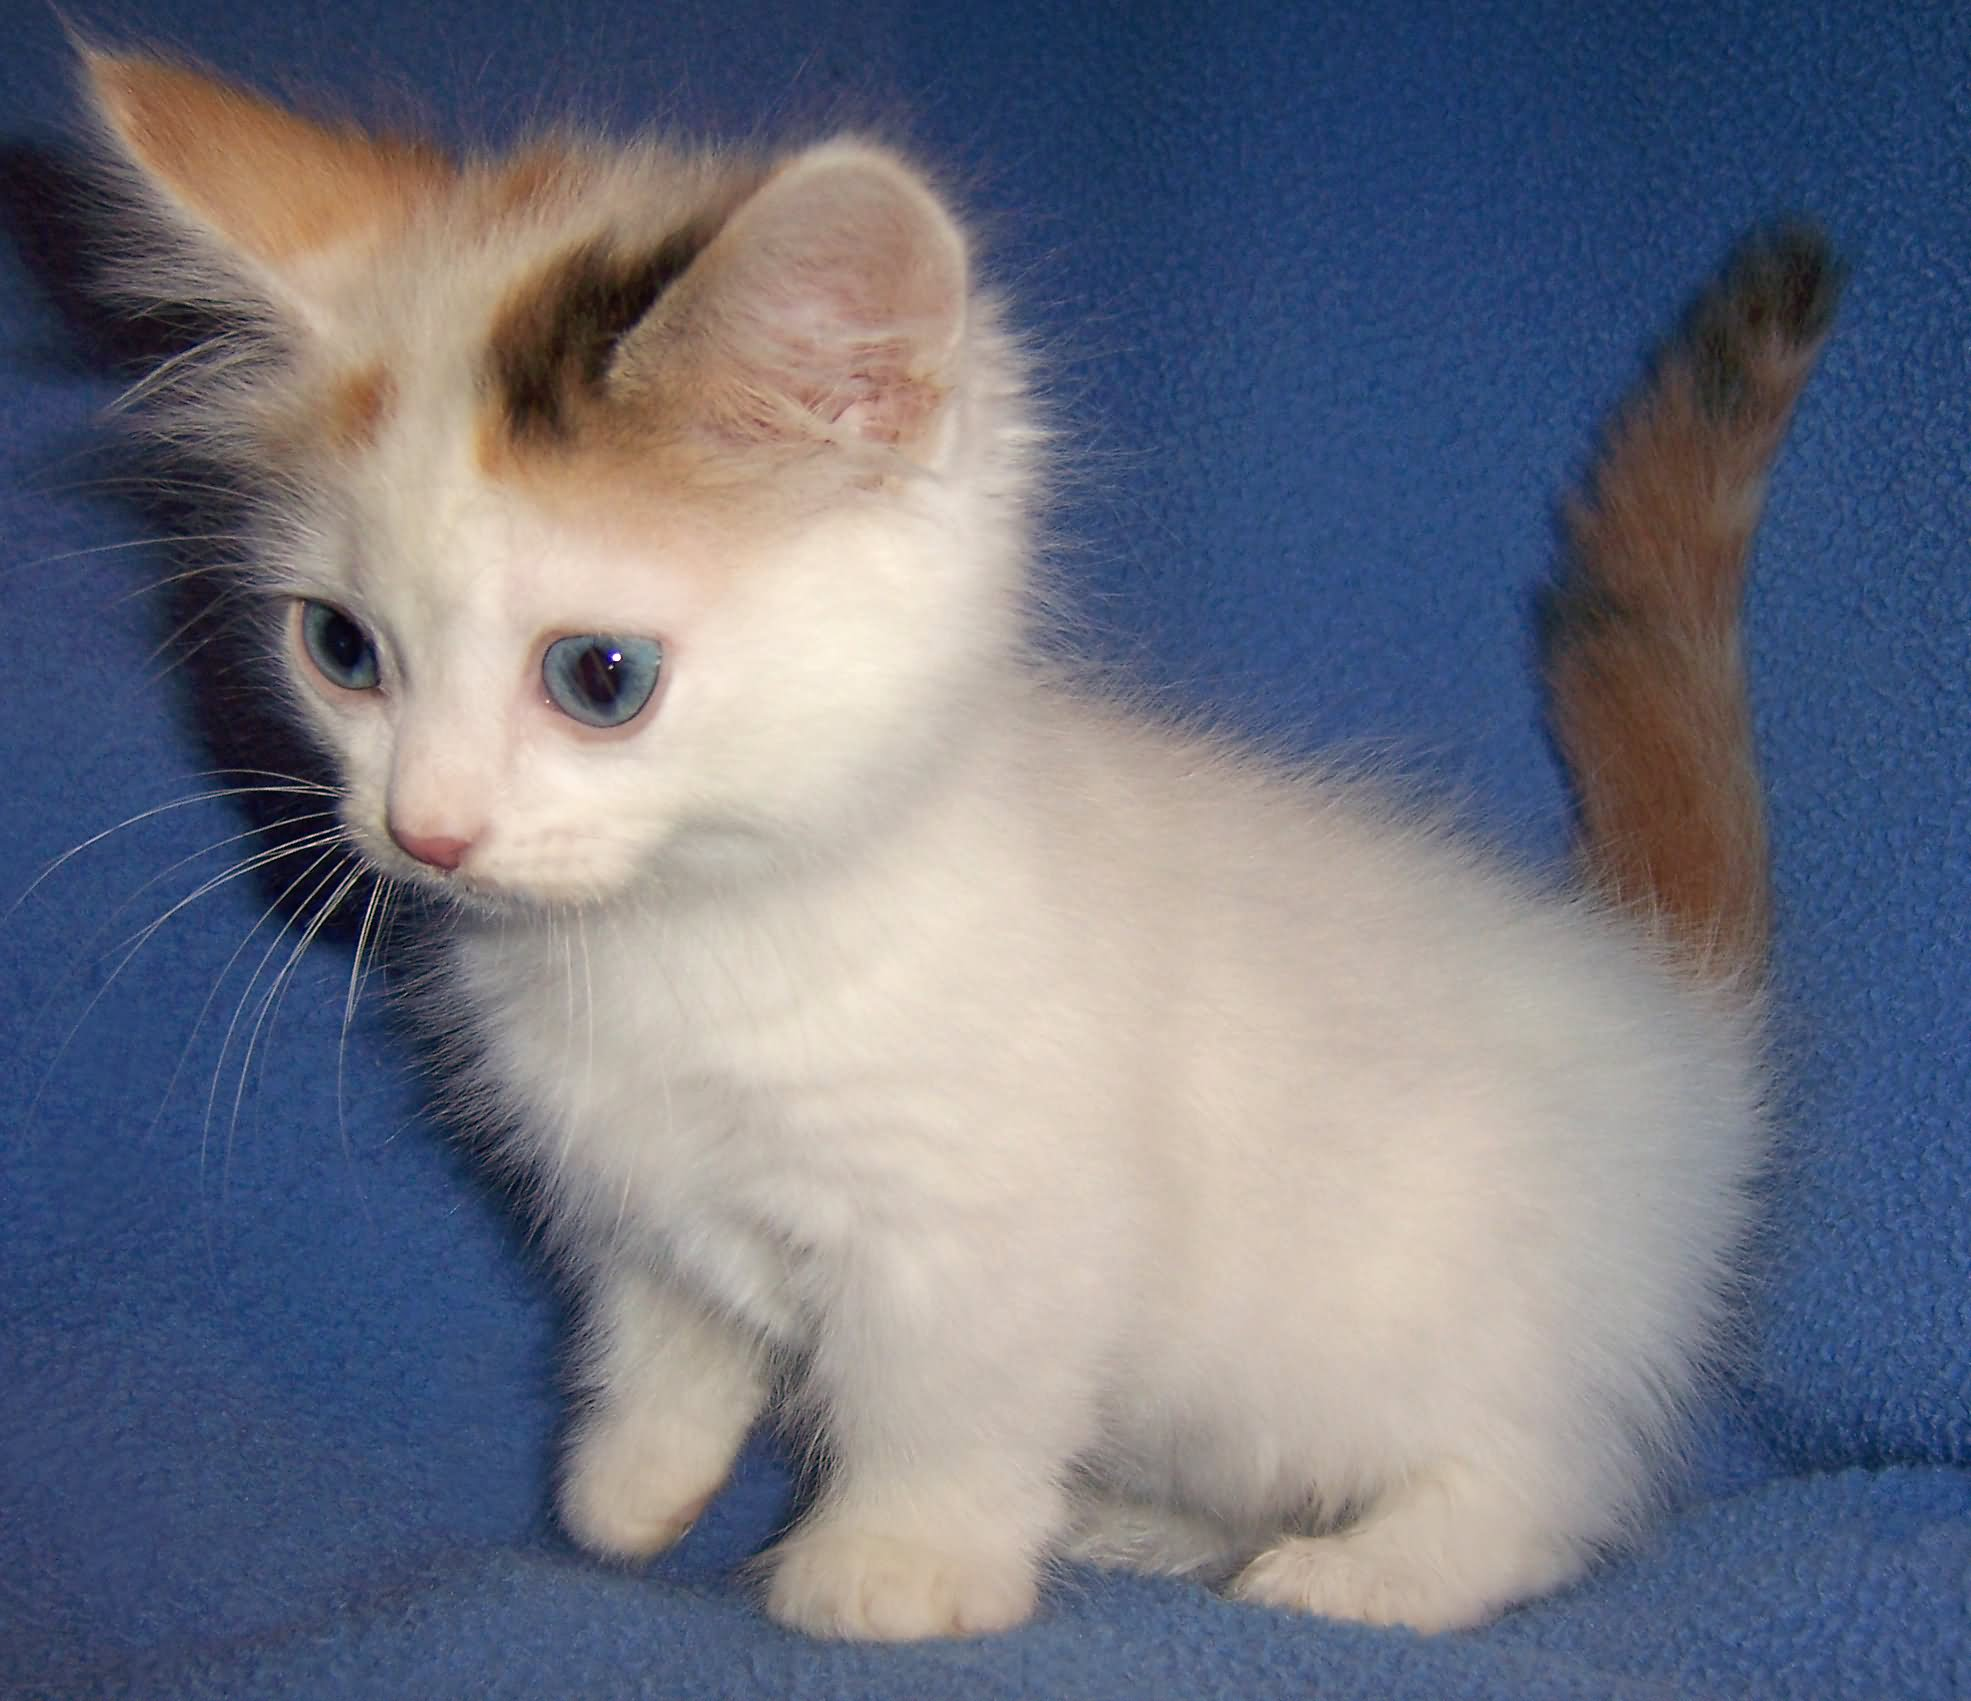 45 Awesome Munchkin Kitten Pictures And Photos